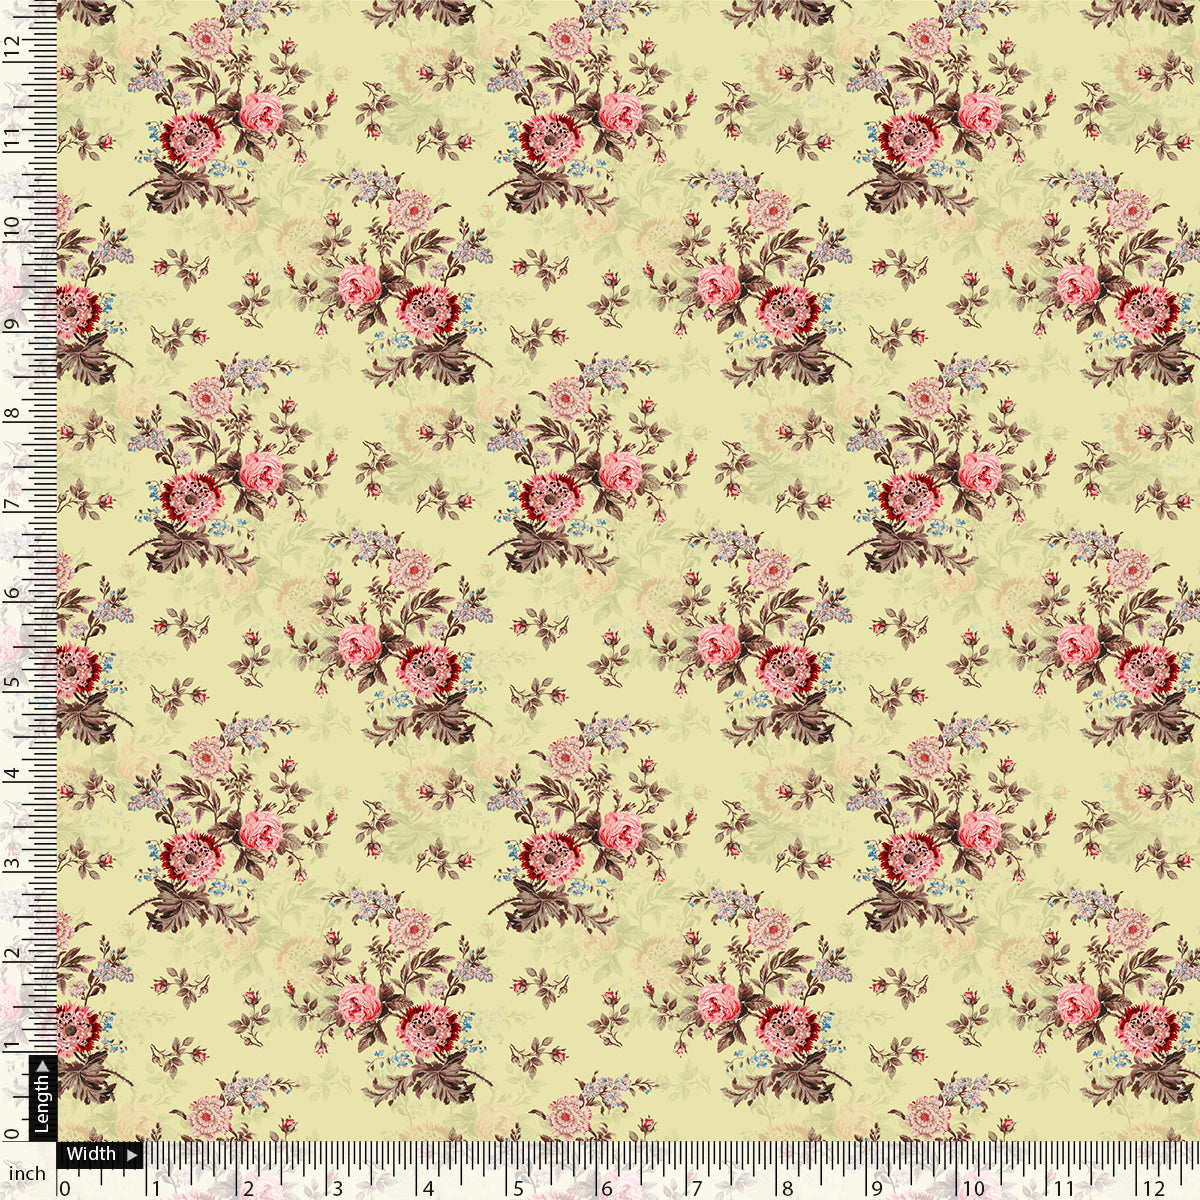 Chrysanthemum And Roses Bunch Digital Printed Fabric